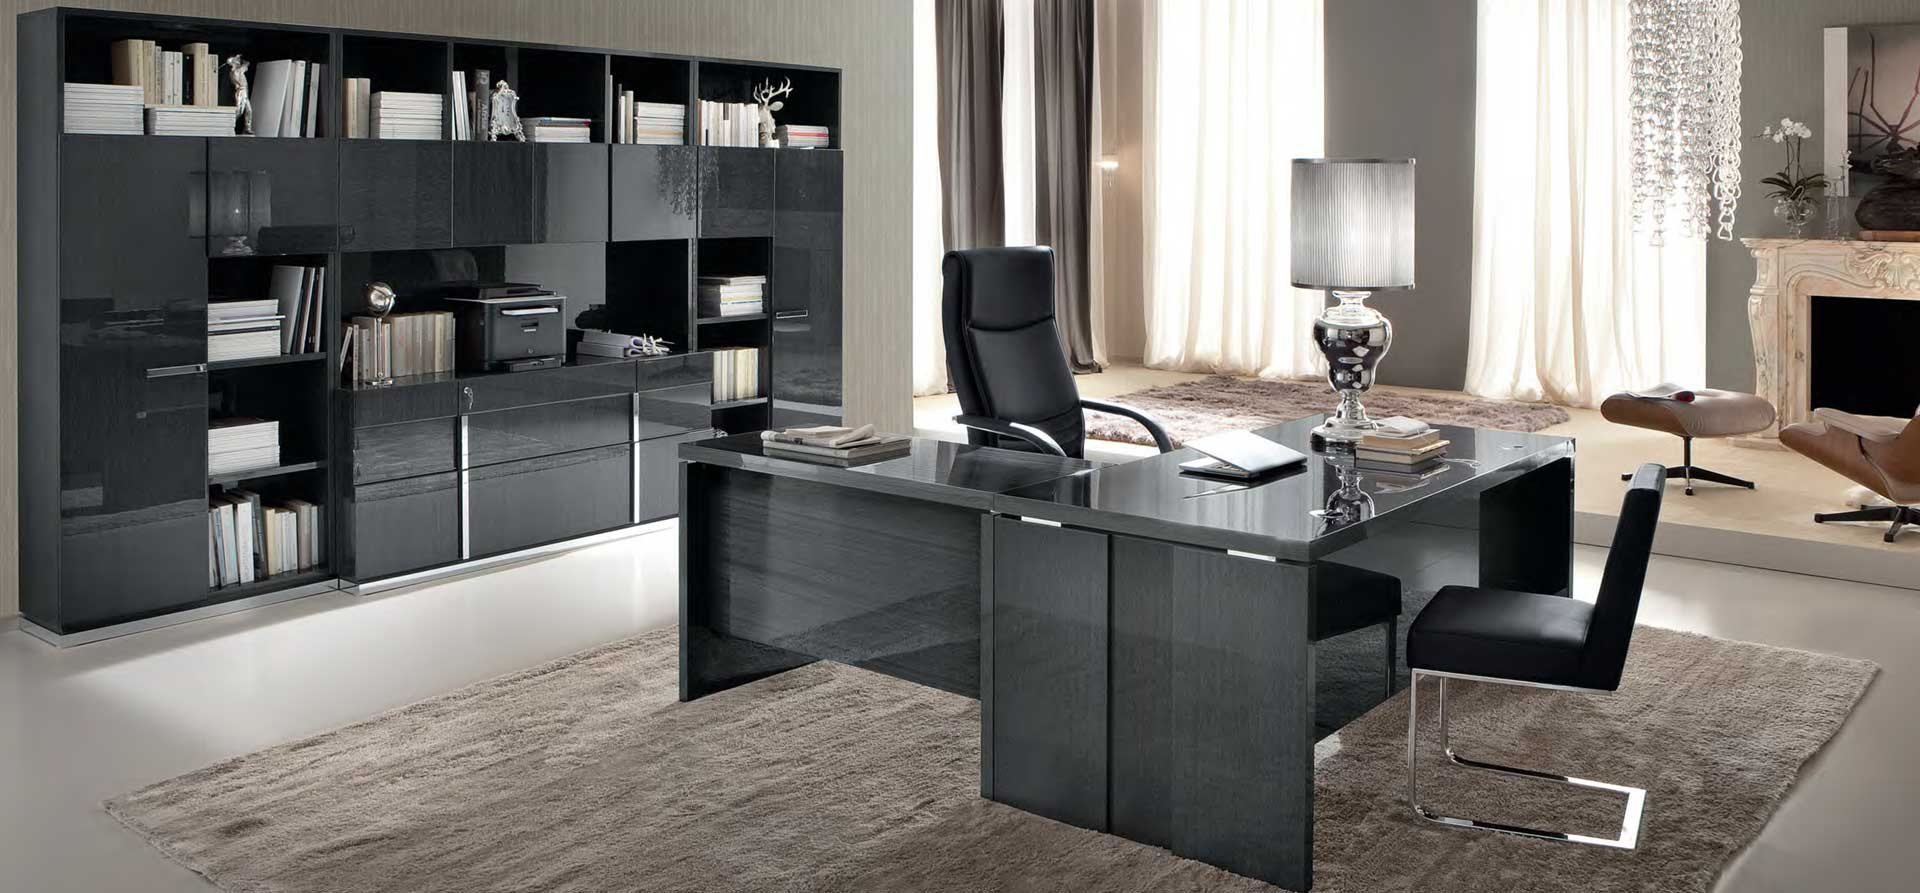 Mustique Home Office - Home Office